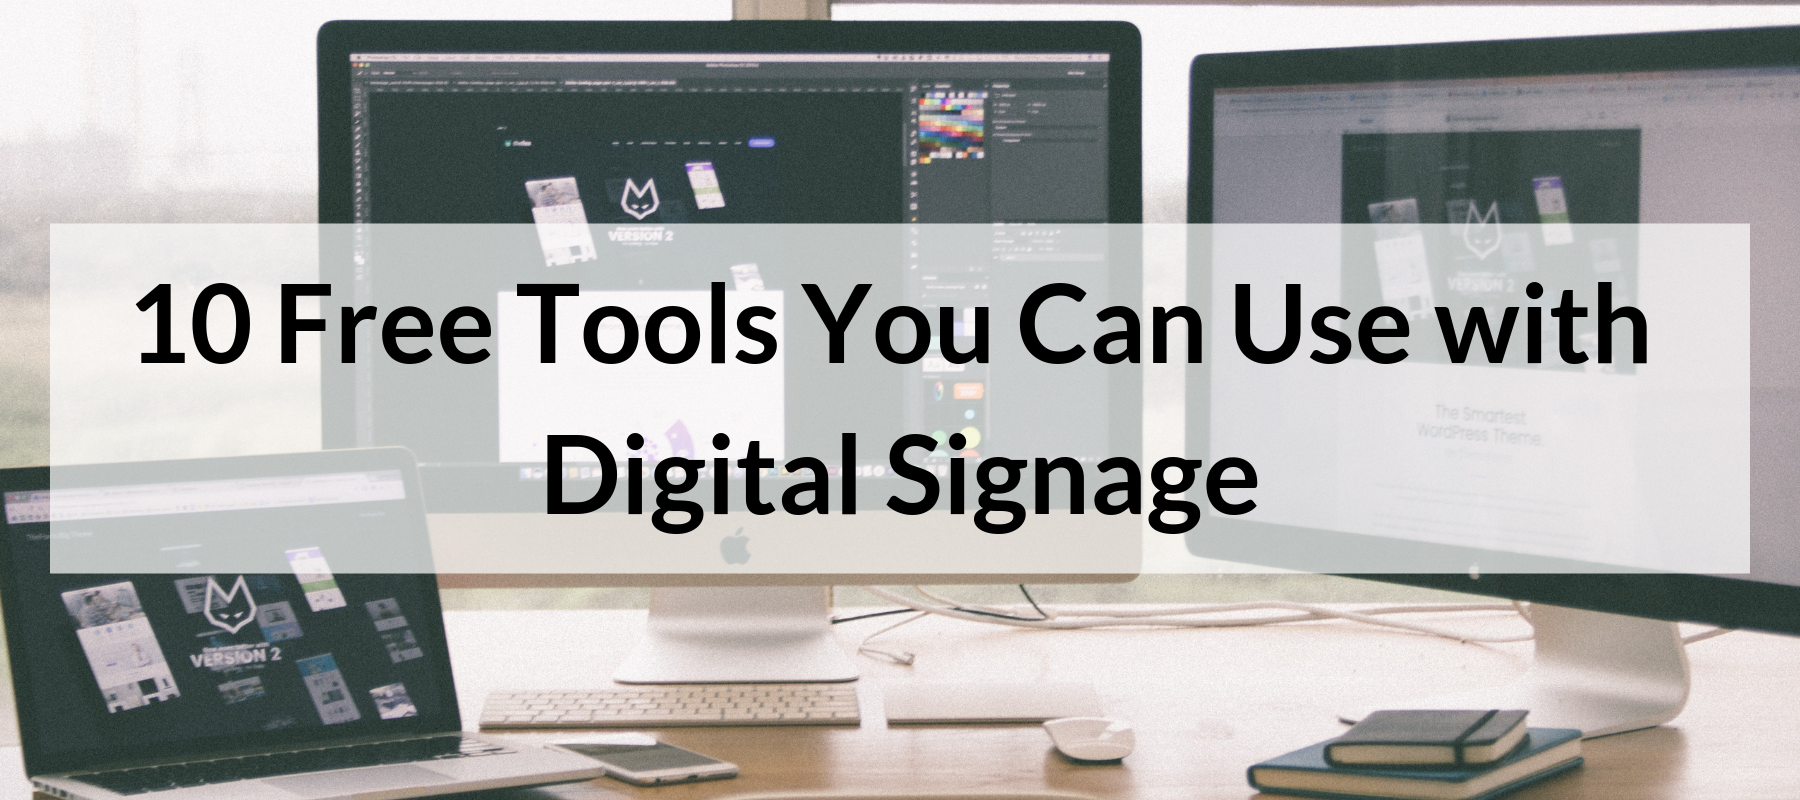 10 Free Tools You Can Use with Digital Signage